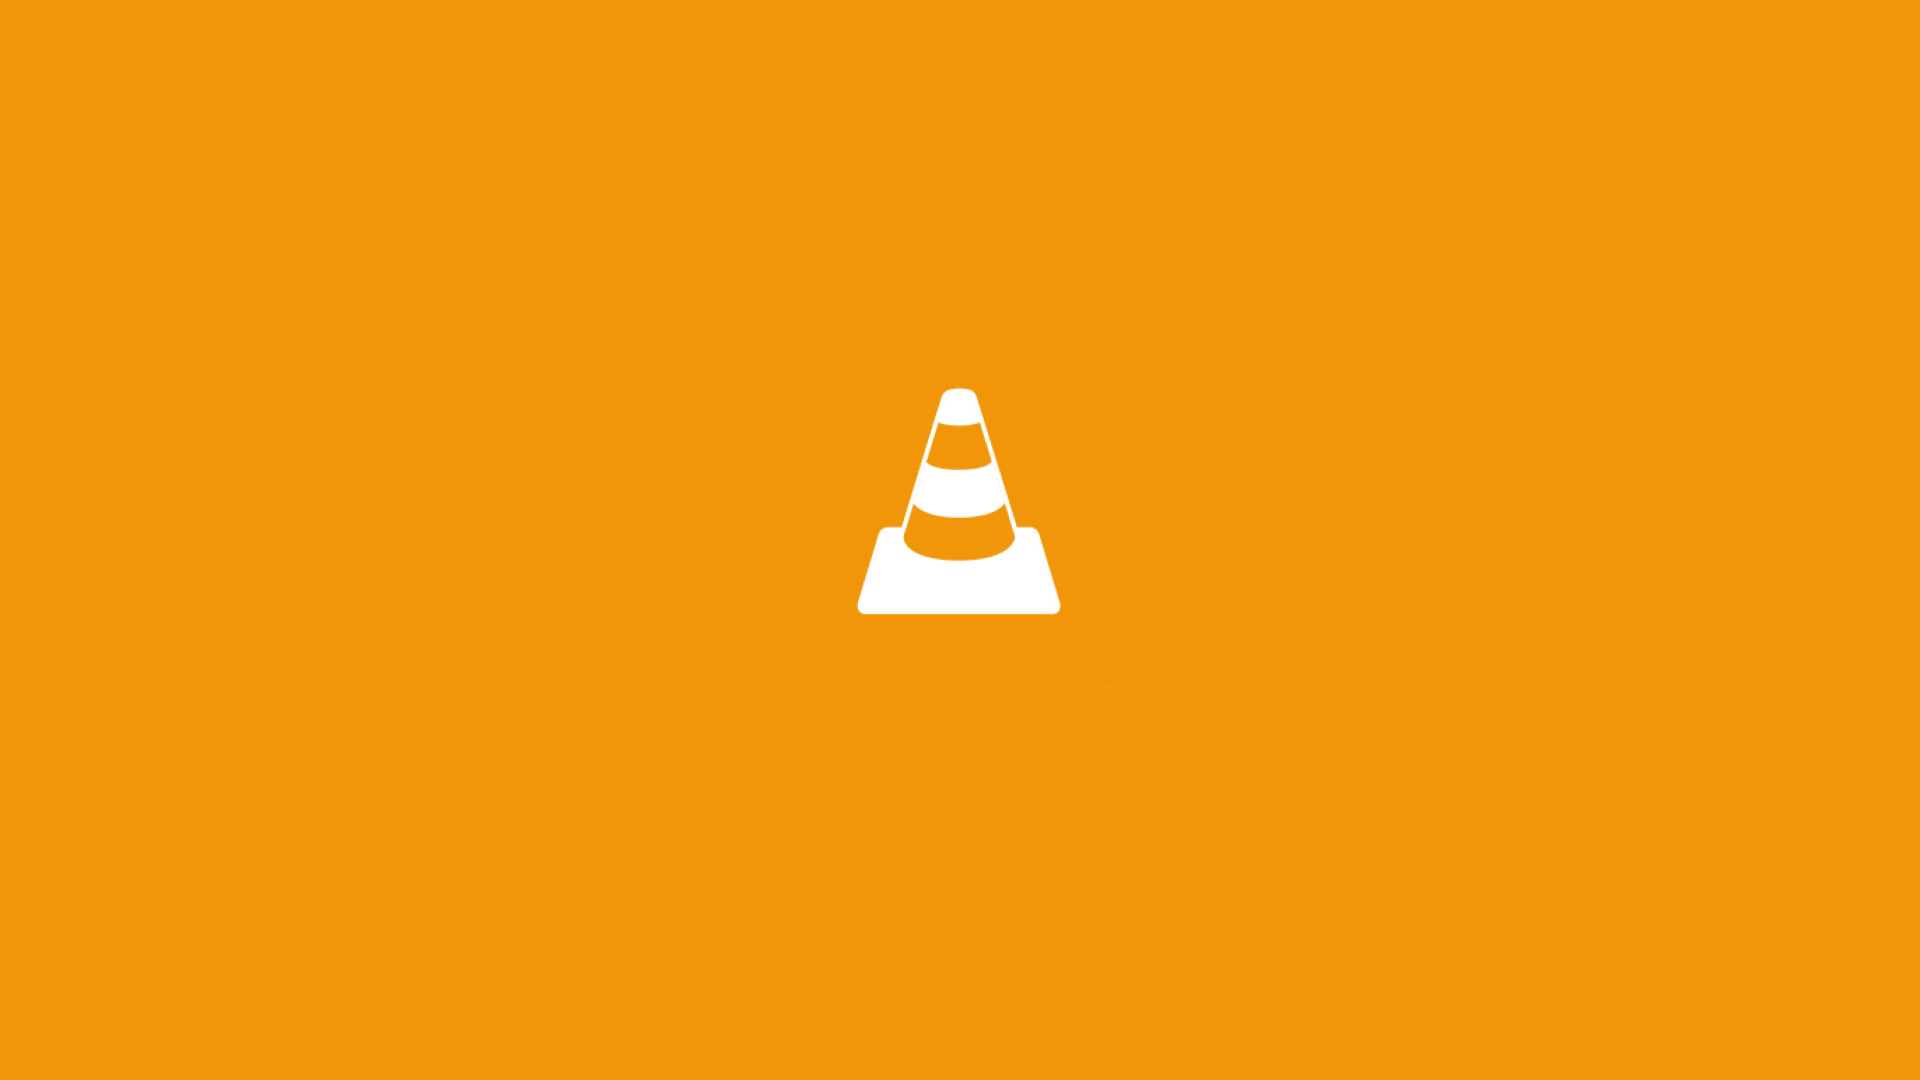 Player VLC appeared in the App Store for tvOS